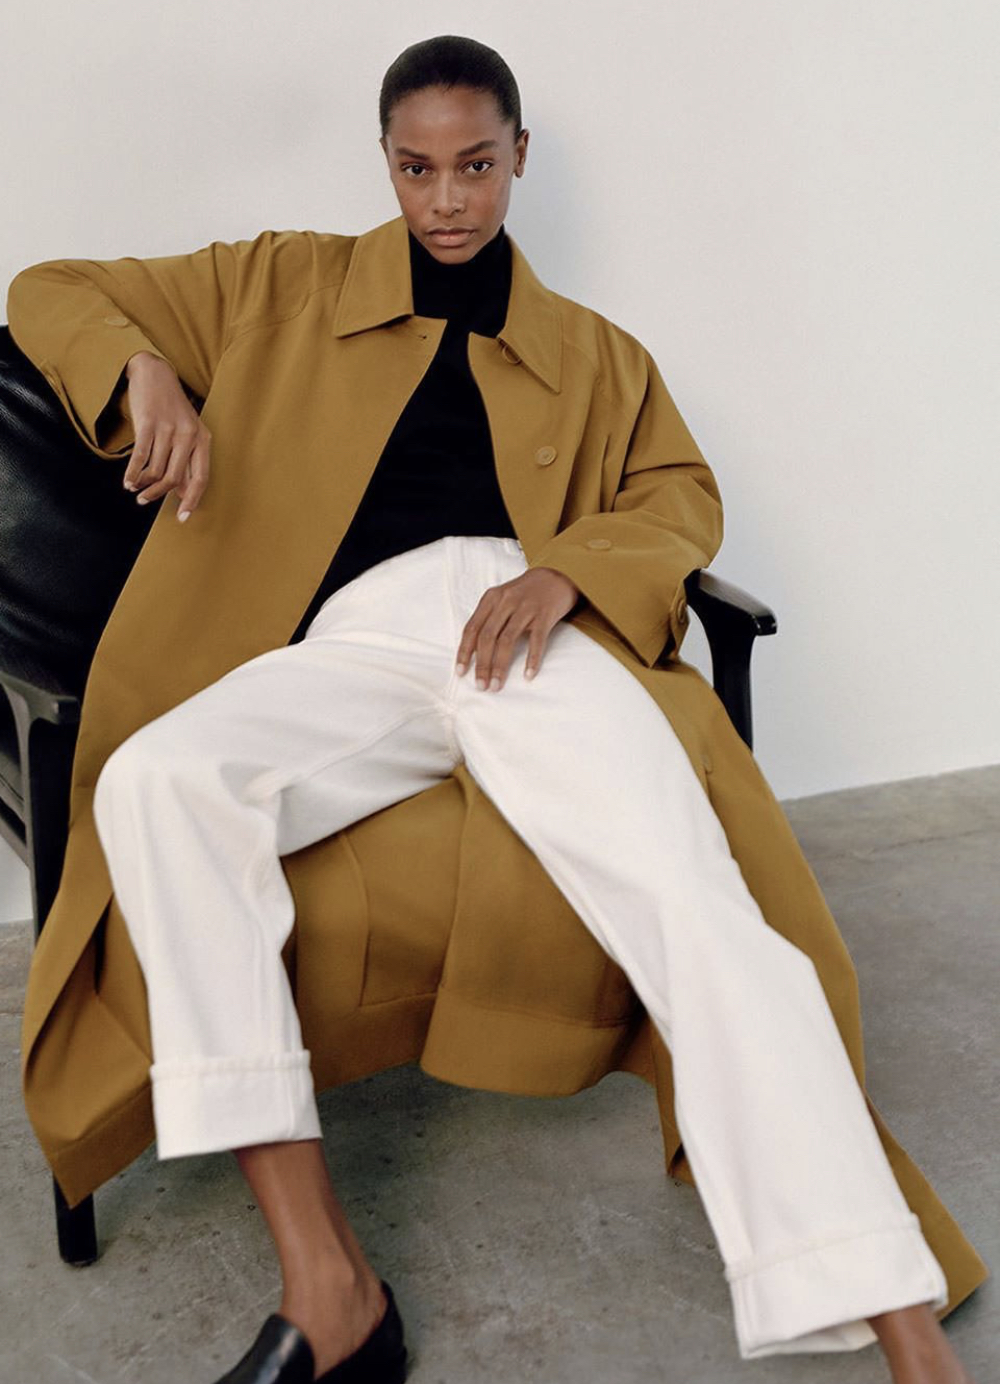 5 Minimalist Fall Outfit Ideas — Capsule Wardrobe with camel trench coat, black top, white jeans, and black loafers